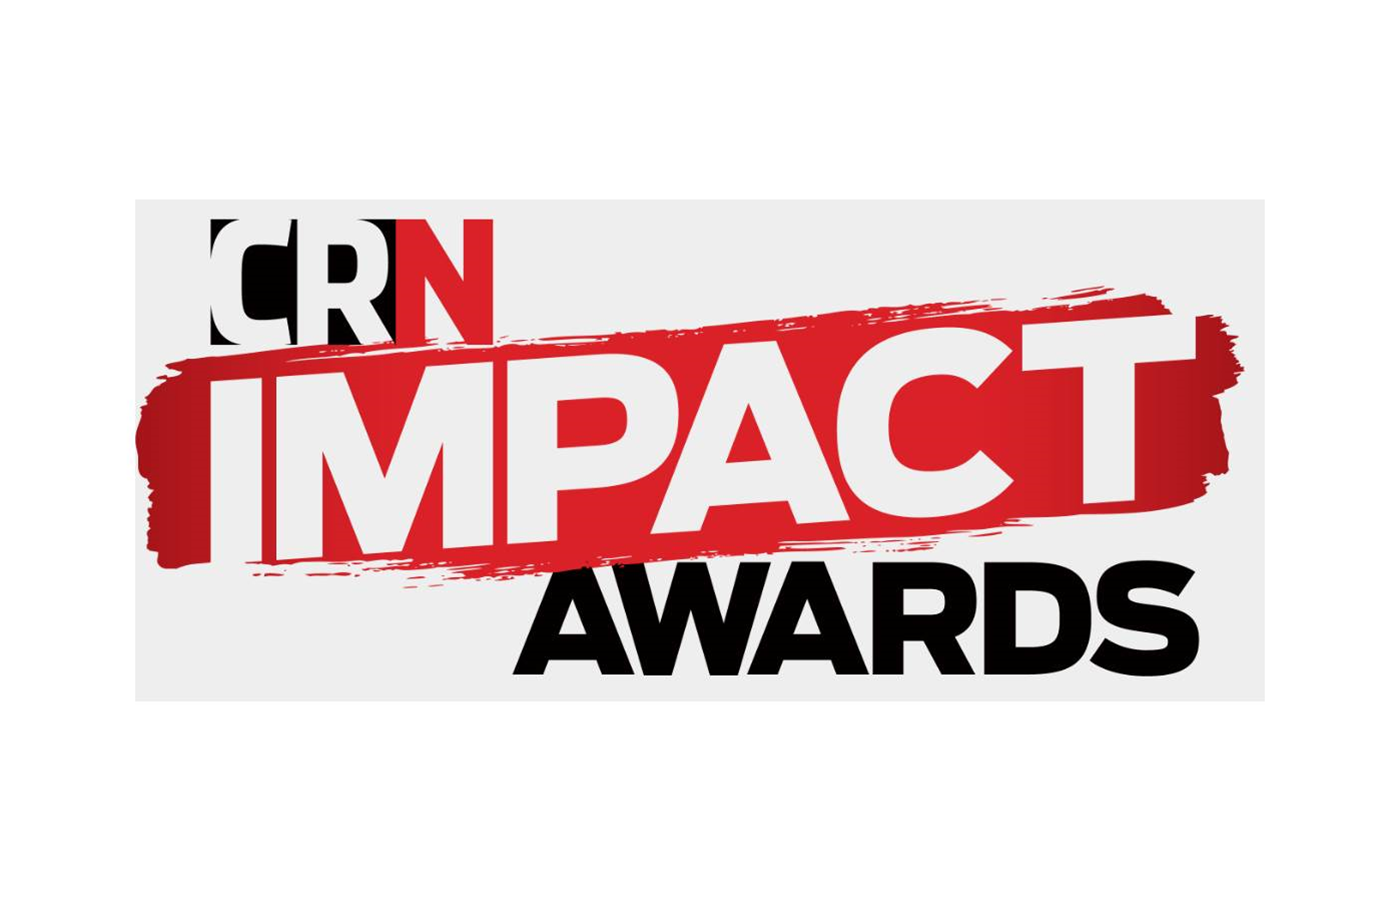 2019 CRN IMPACT Awards - Finalists revealed!